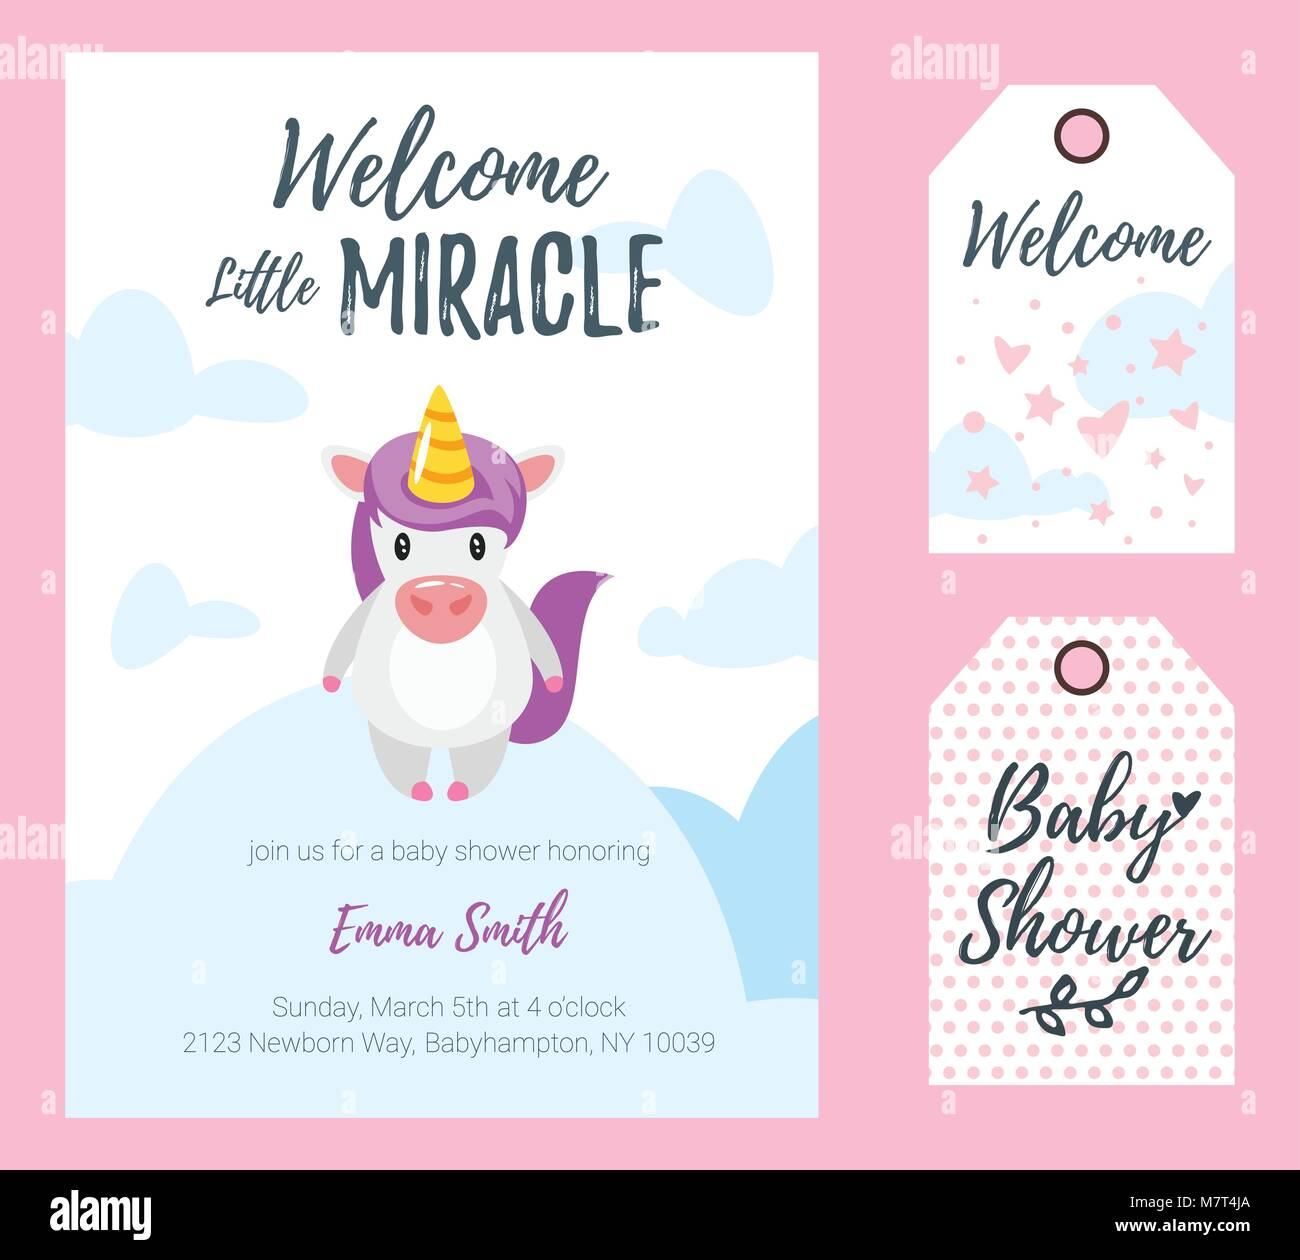 Vector cartoon style illustration of baby shower invitation stock vector cartoon style illustration of baby shower invitation celebration greeting card and tags template cute unicorn standing on cloud welcome litt kristyandbryce Image collections